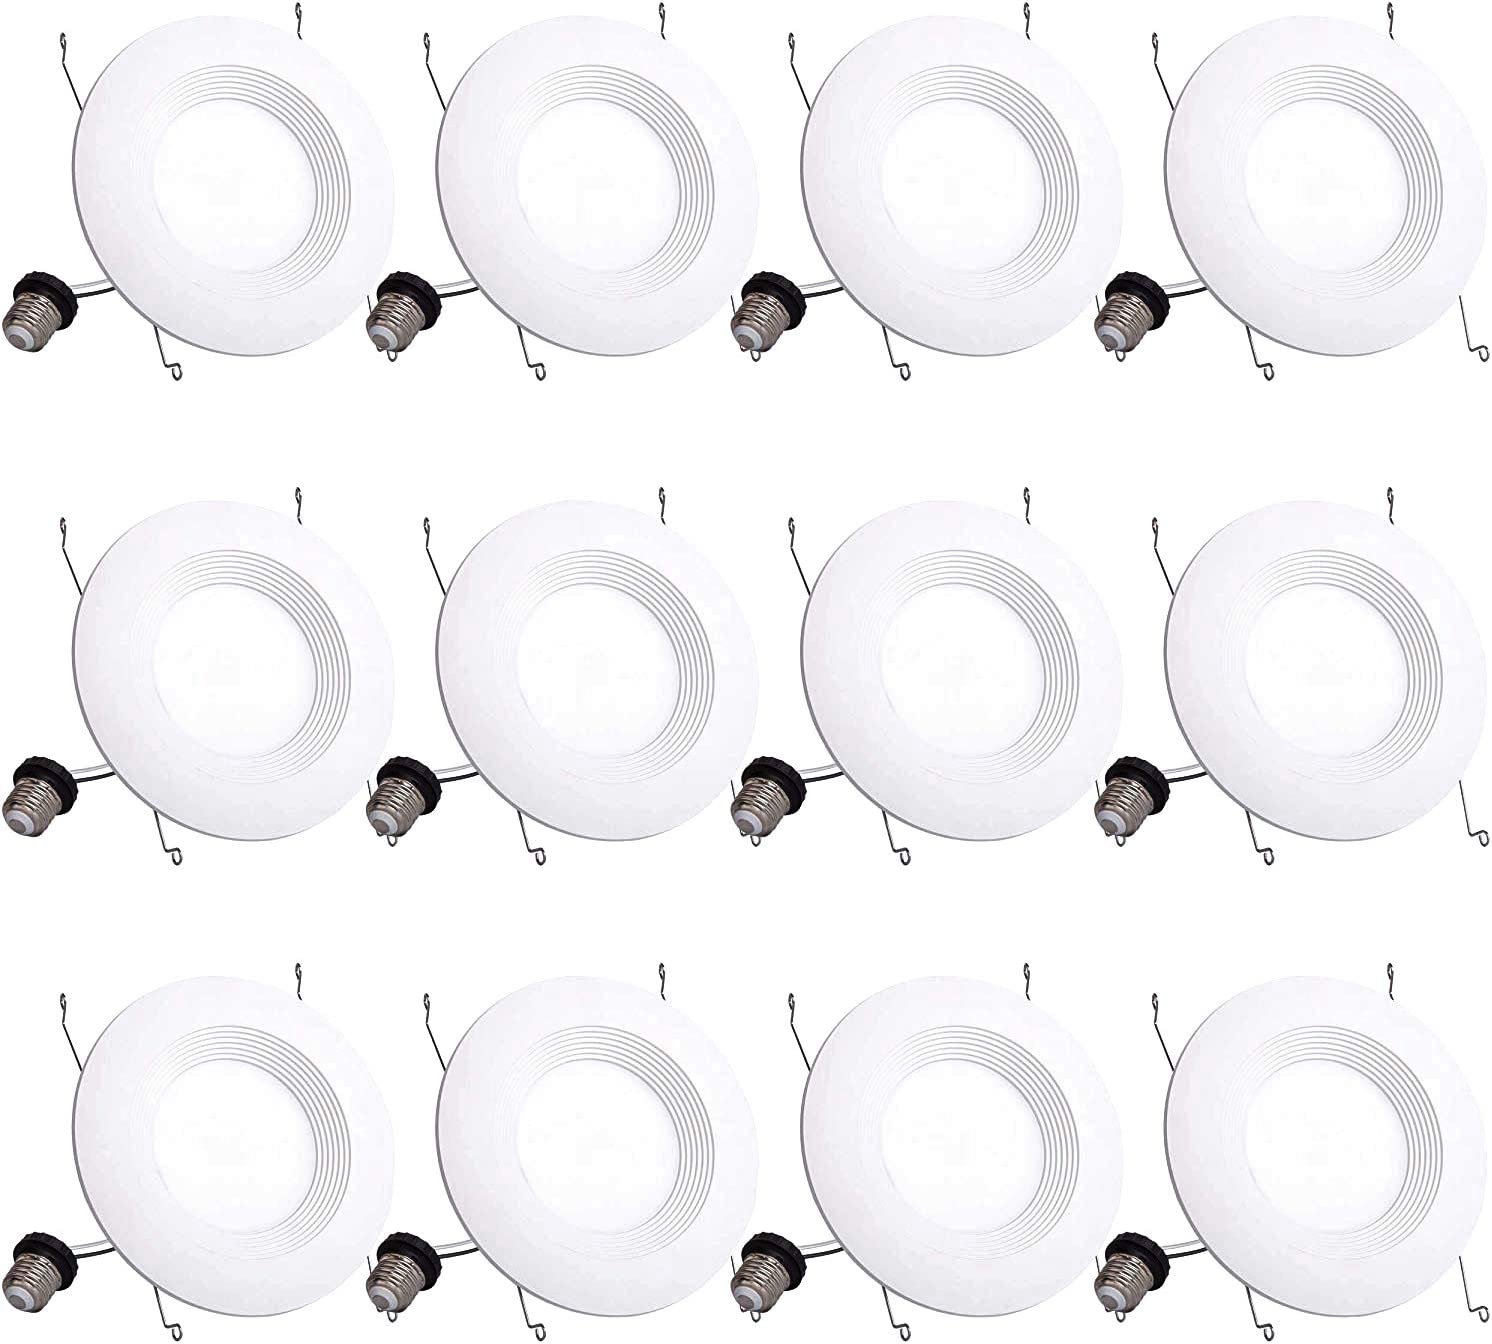 Bbounder Lighting 12 Pack 5/6 Inch LED Recessed Downlight, Baffle Trim, Dimmable, 13W=100W, 4000K Cool White, 1000 LM, Damp Rated, Simple Retrofit Installation - UL + Energy Star No Flicker